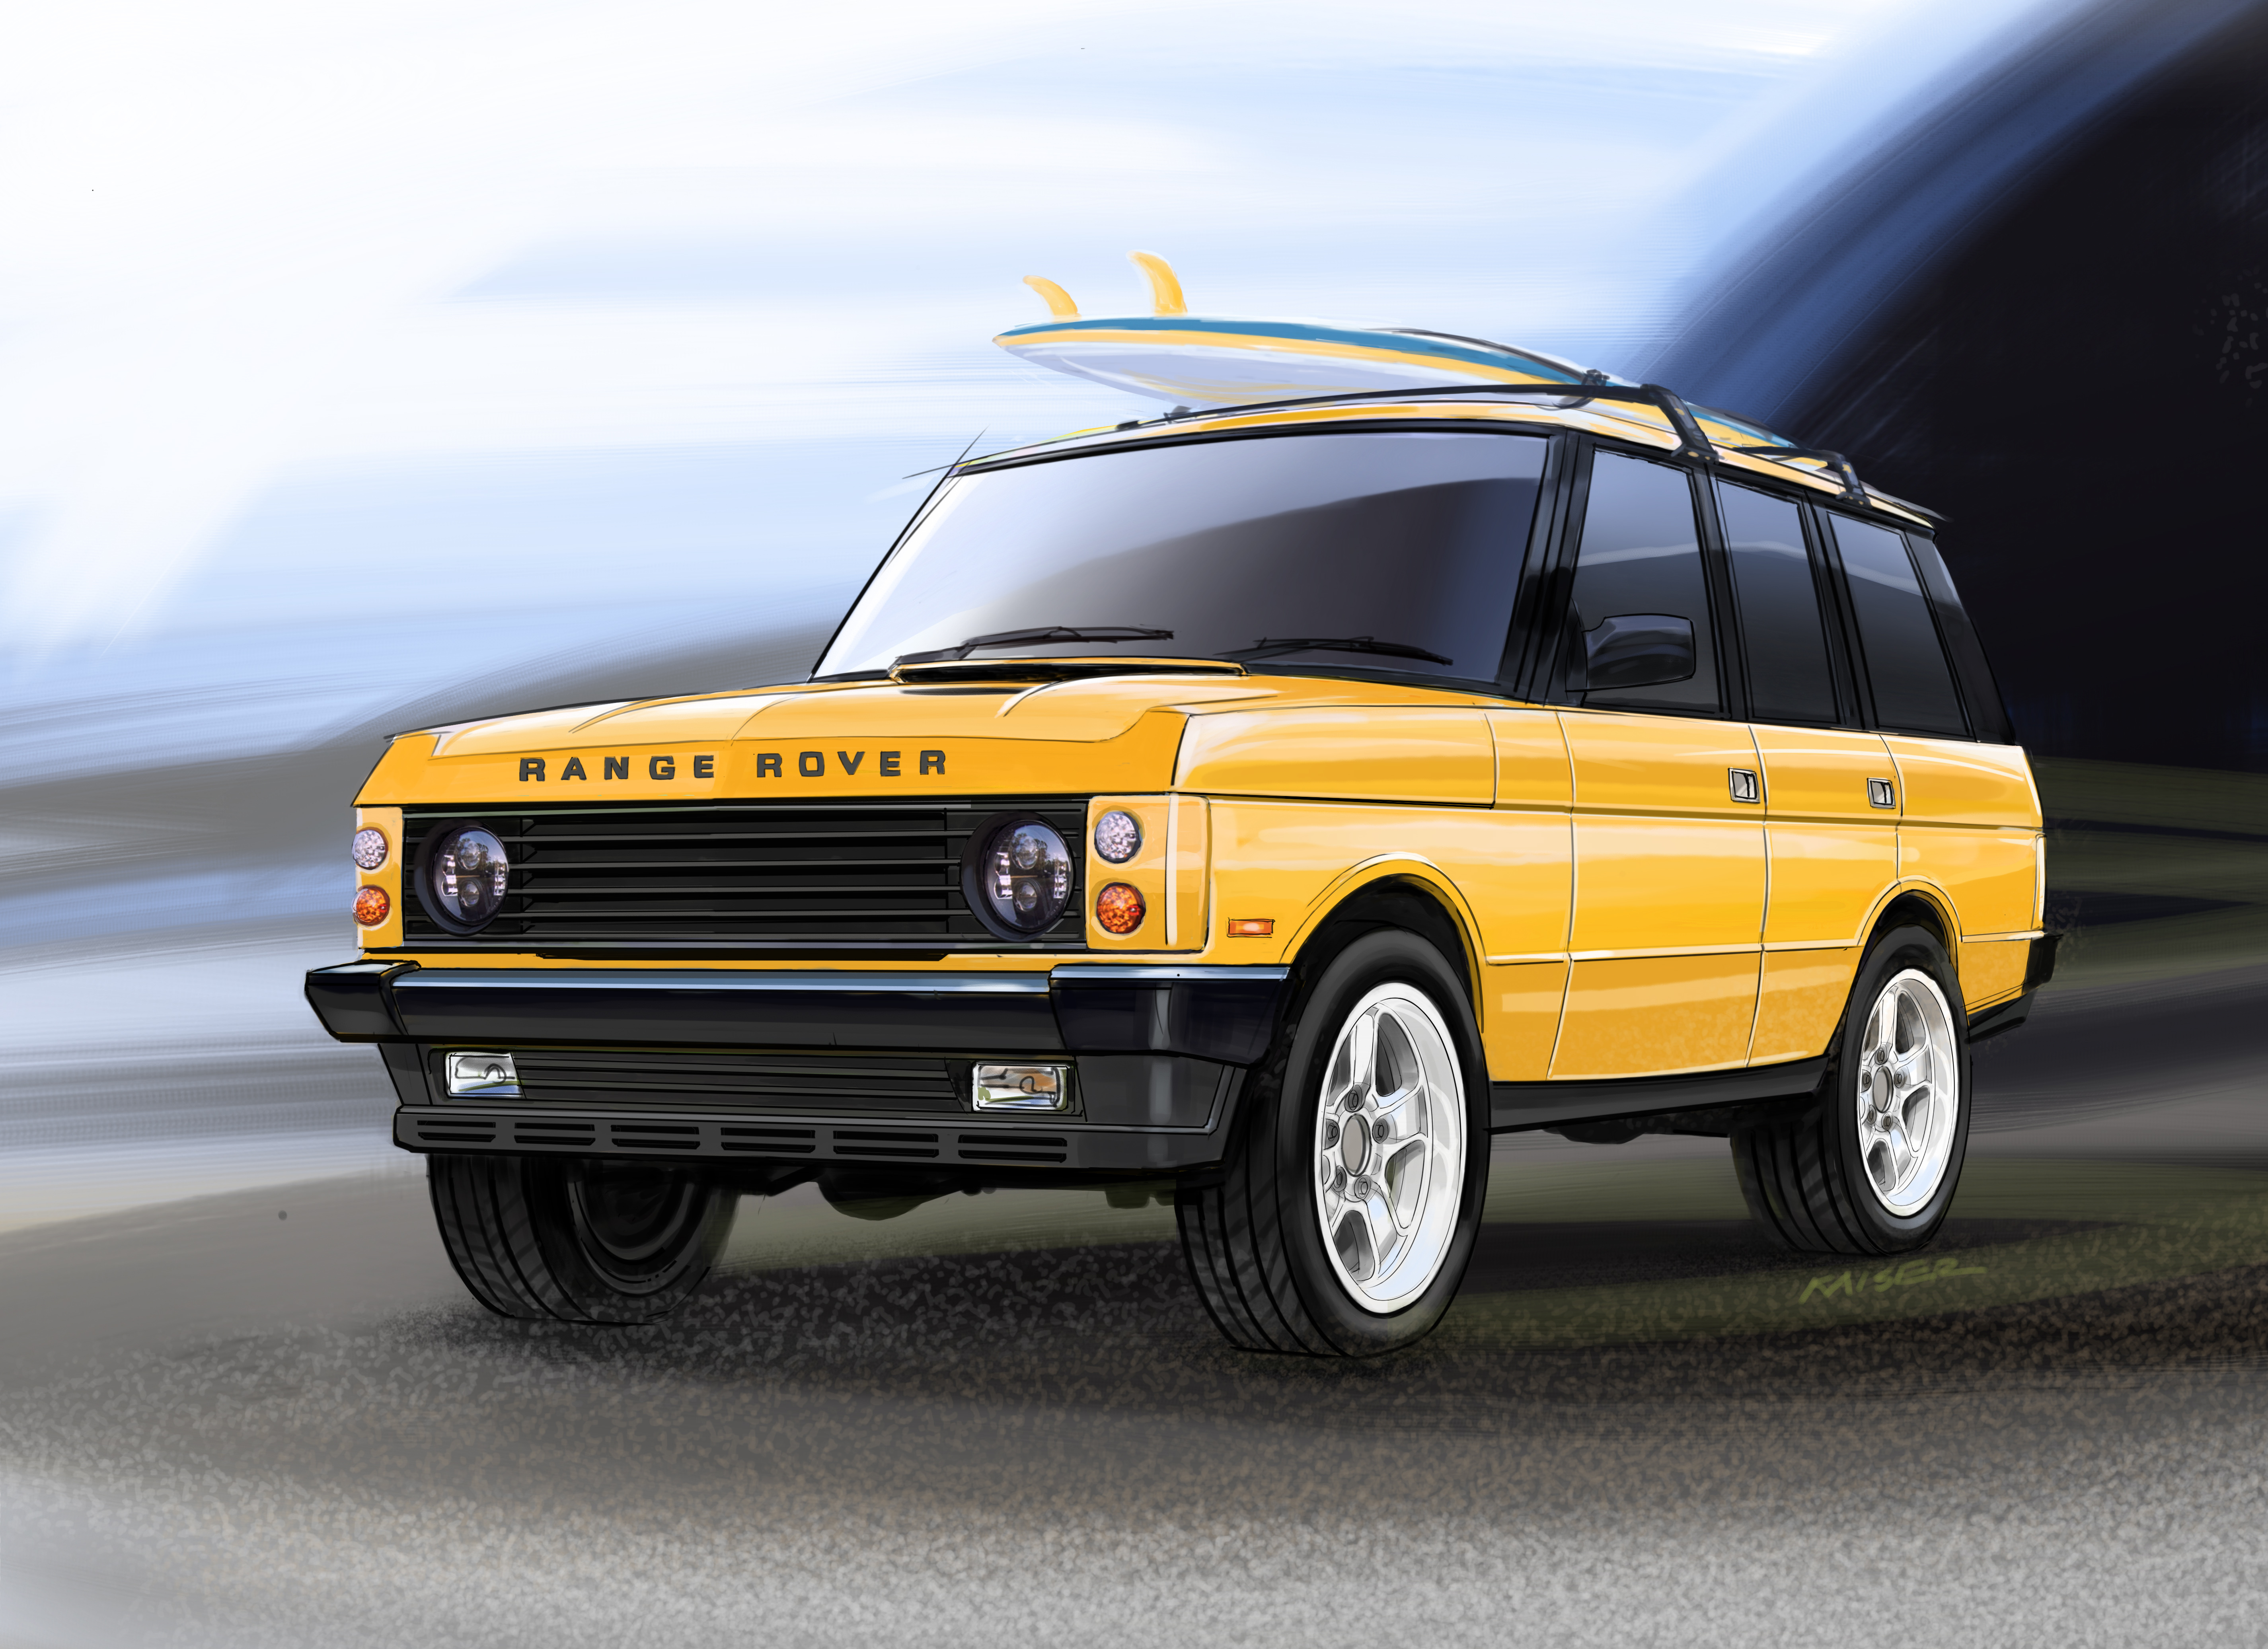 East Coast Defender To Ignite The Demand For The Ultimate Custom Range Rover Classic Business Wire